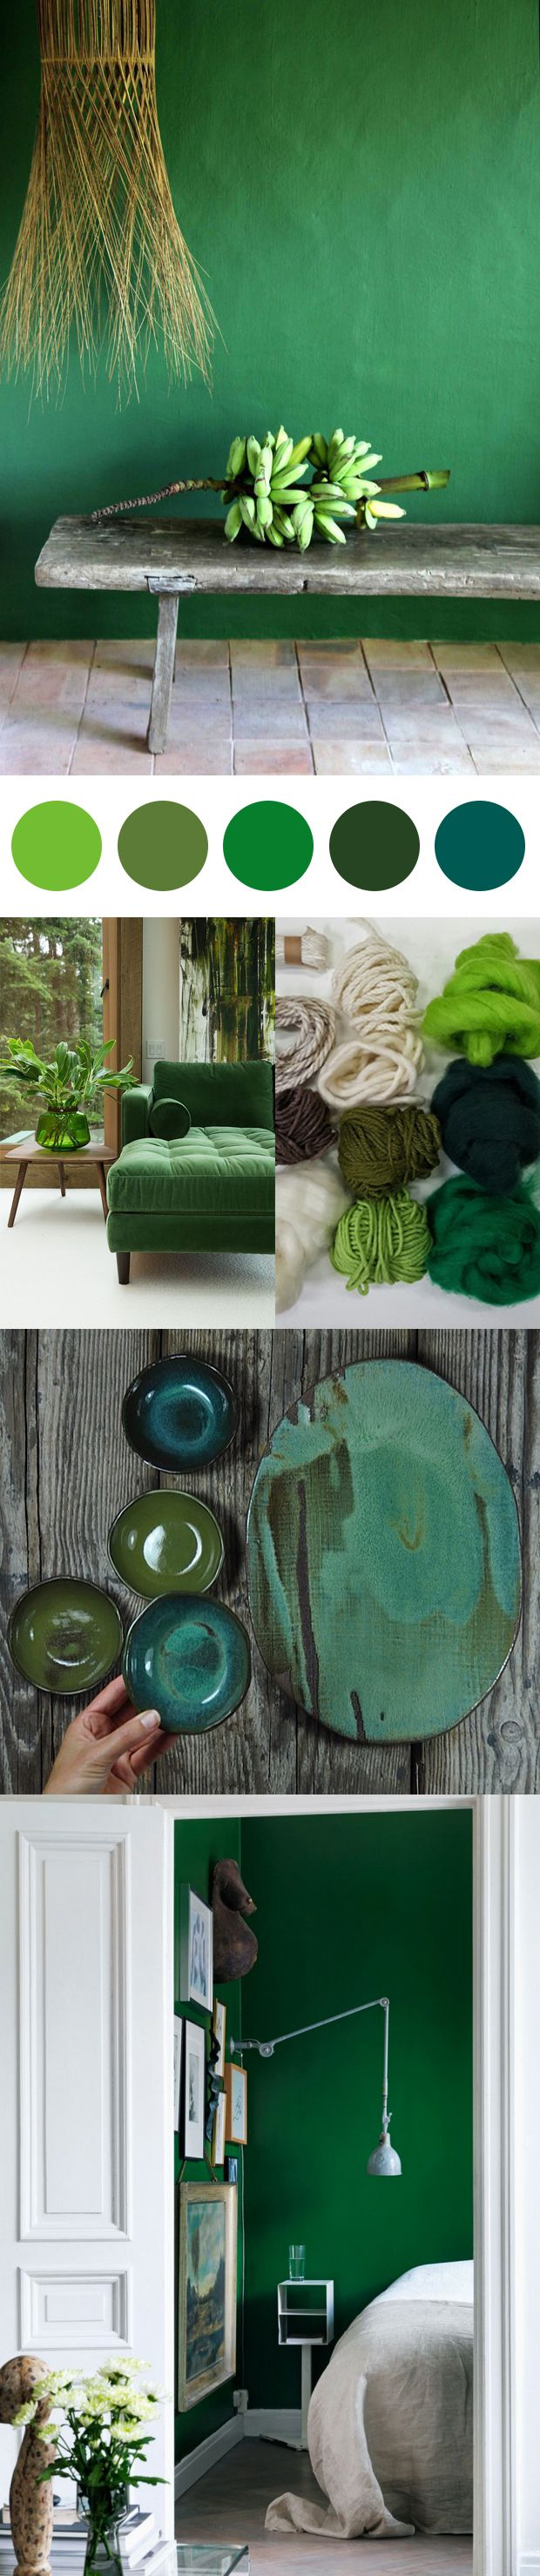 'Greenery'. Pantone Color of the Year 2017 inspo